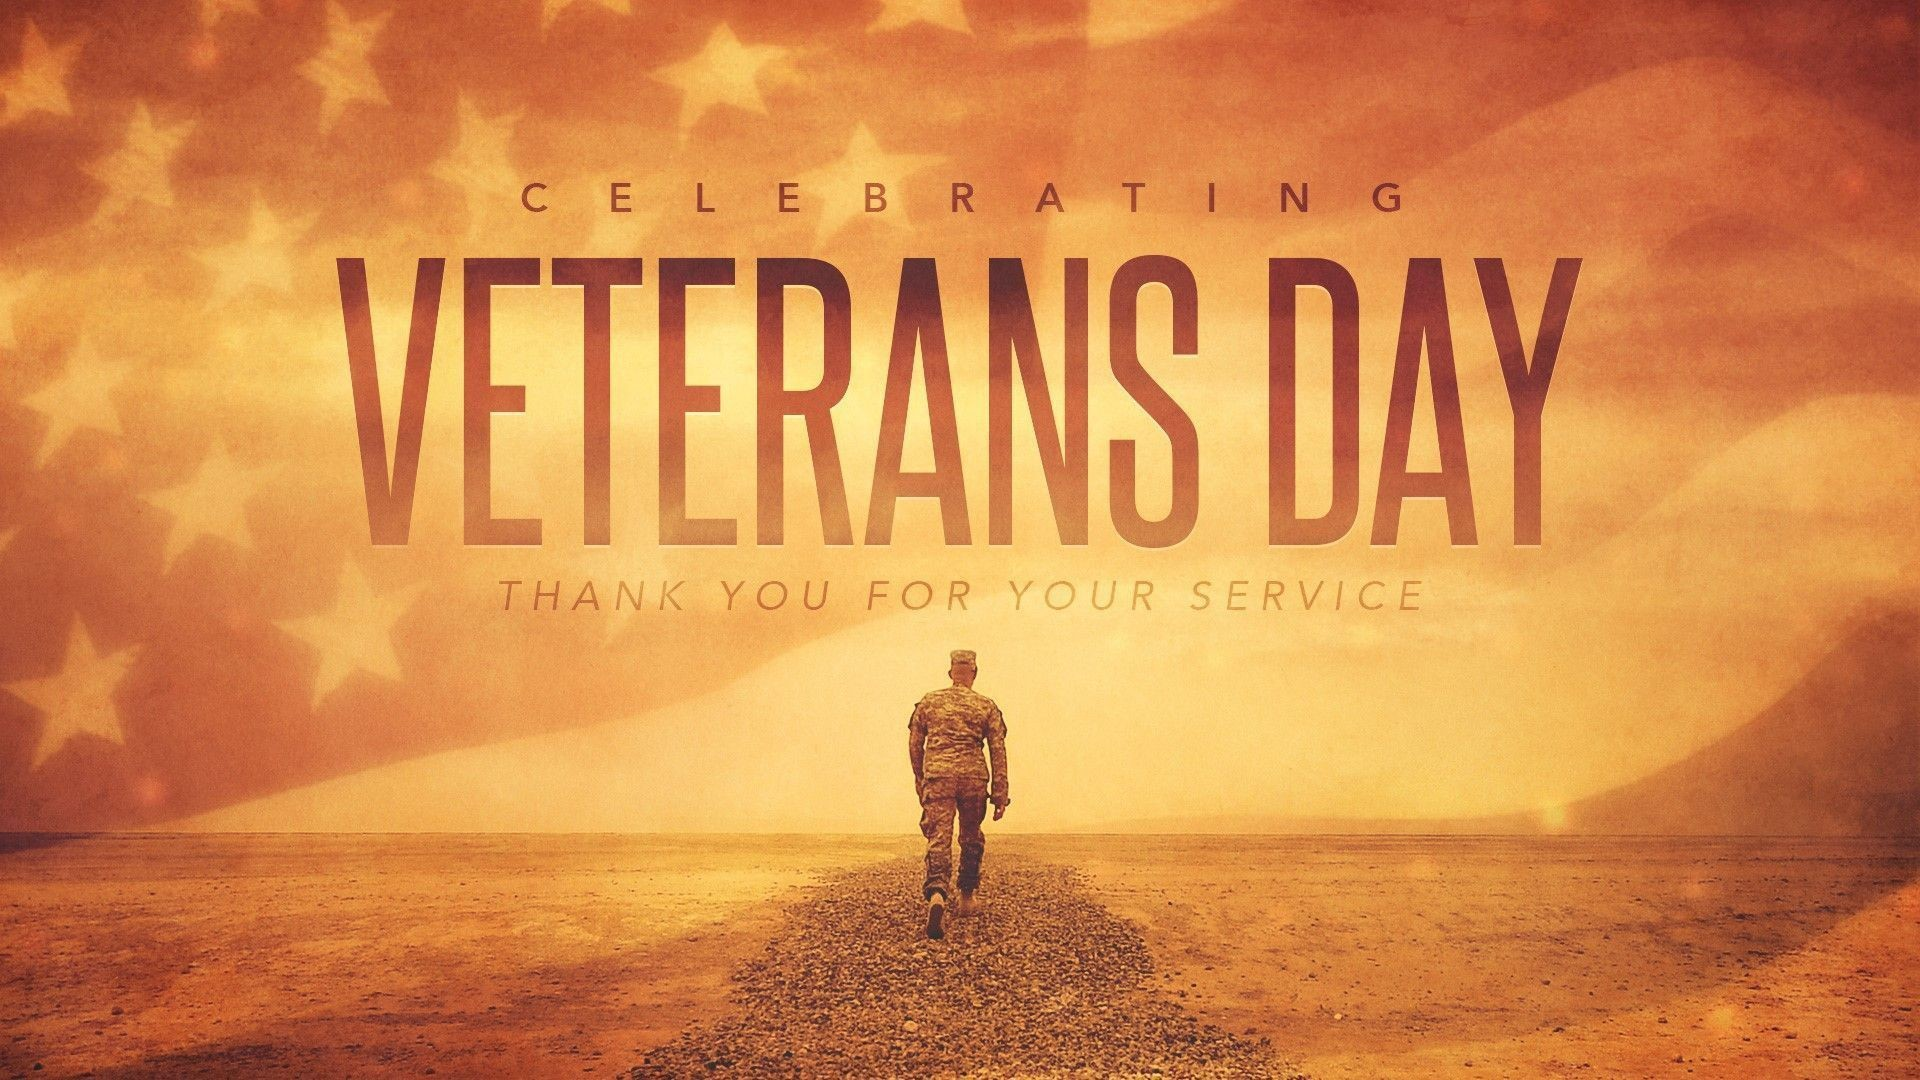 "1920x1080 1600x973 Veterans Day Wallpapers, Cool HDQ Live Veterans Day Backgrounds  ..."">"